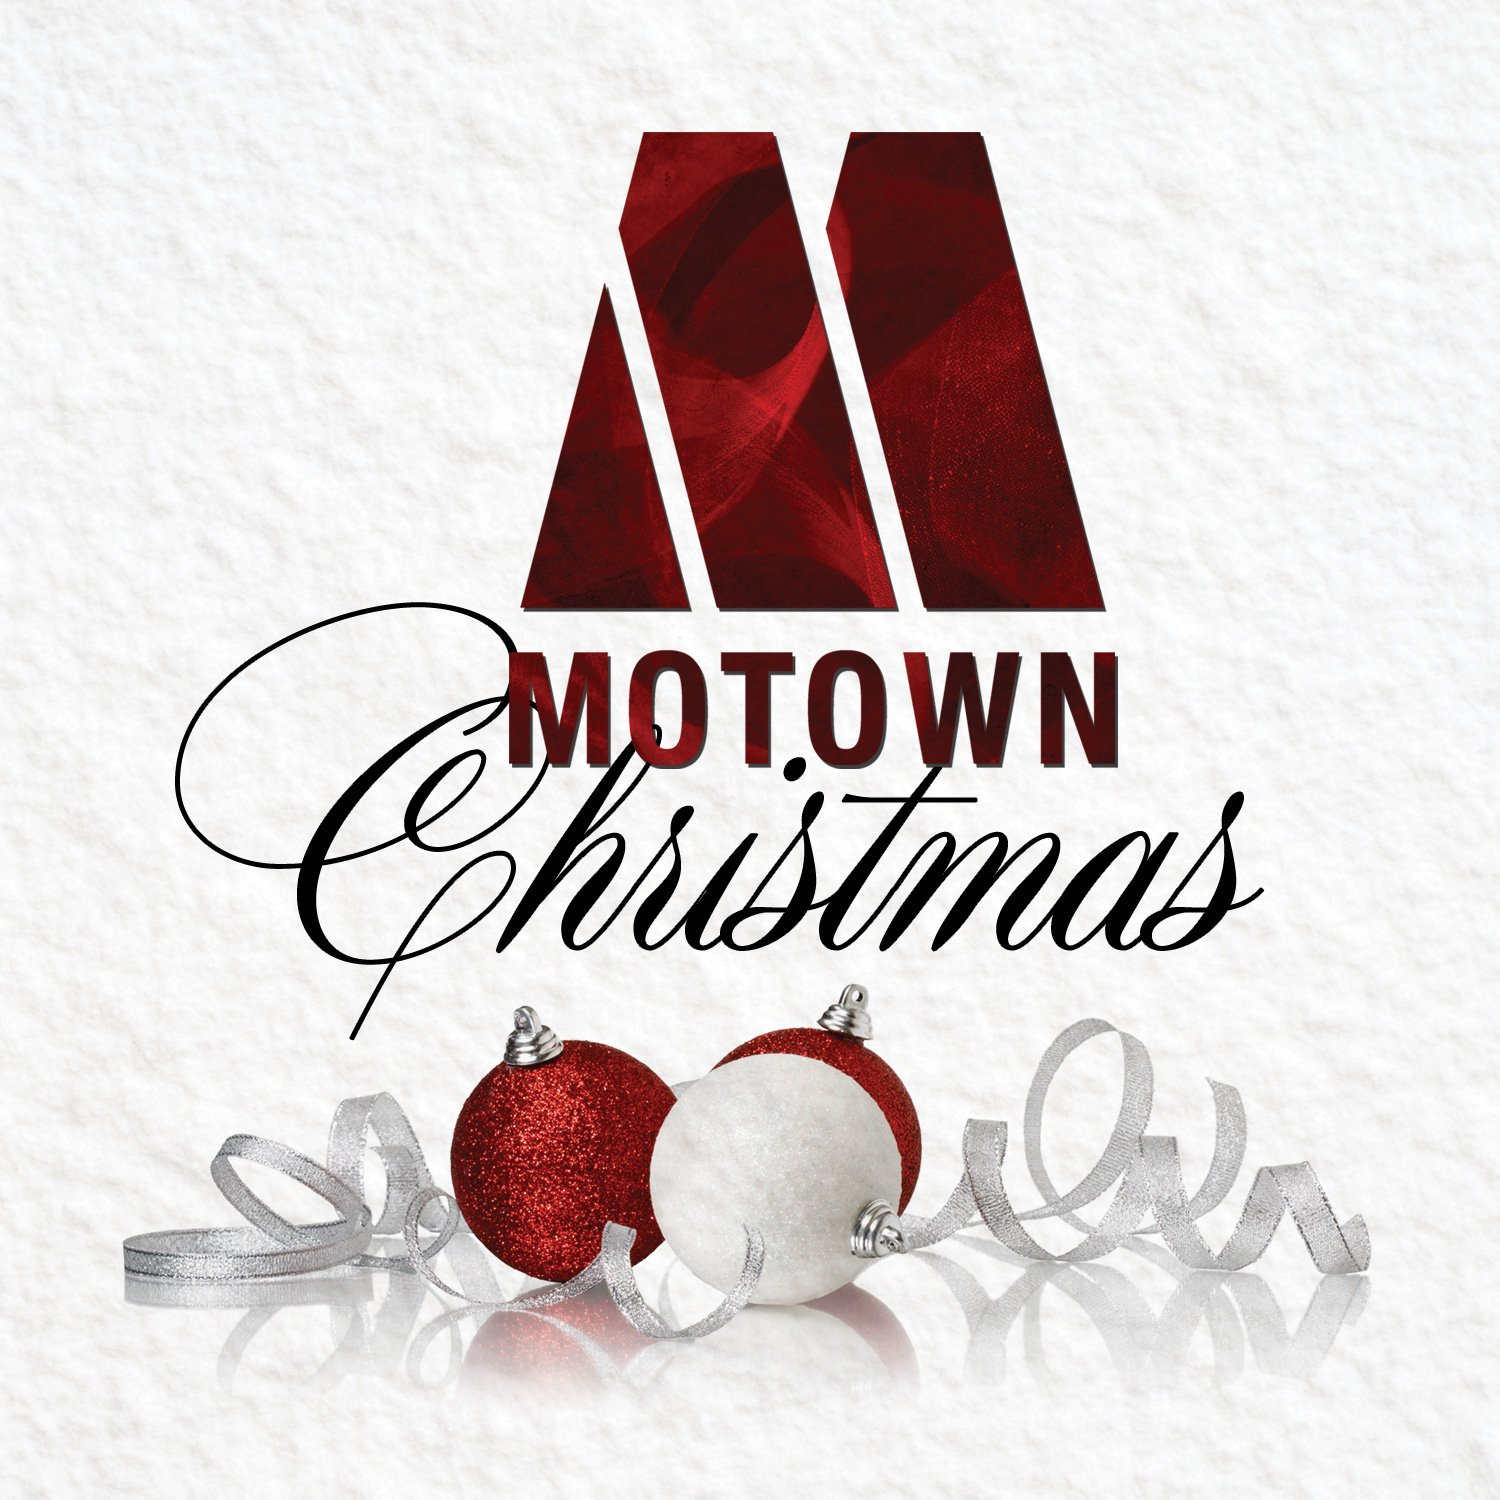 Motown Gospel Releases MOTOWN CHRISTMAS. The First Holiday Album From the Motown Brand In Over ...